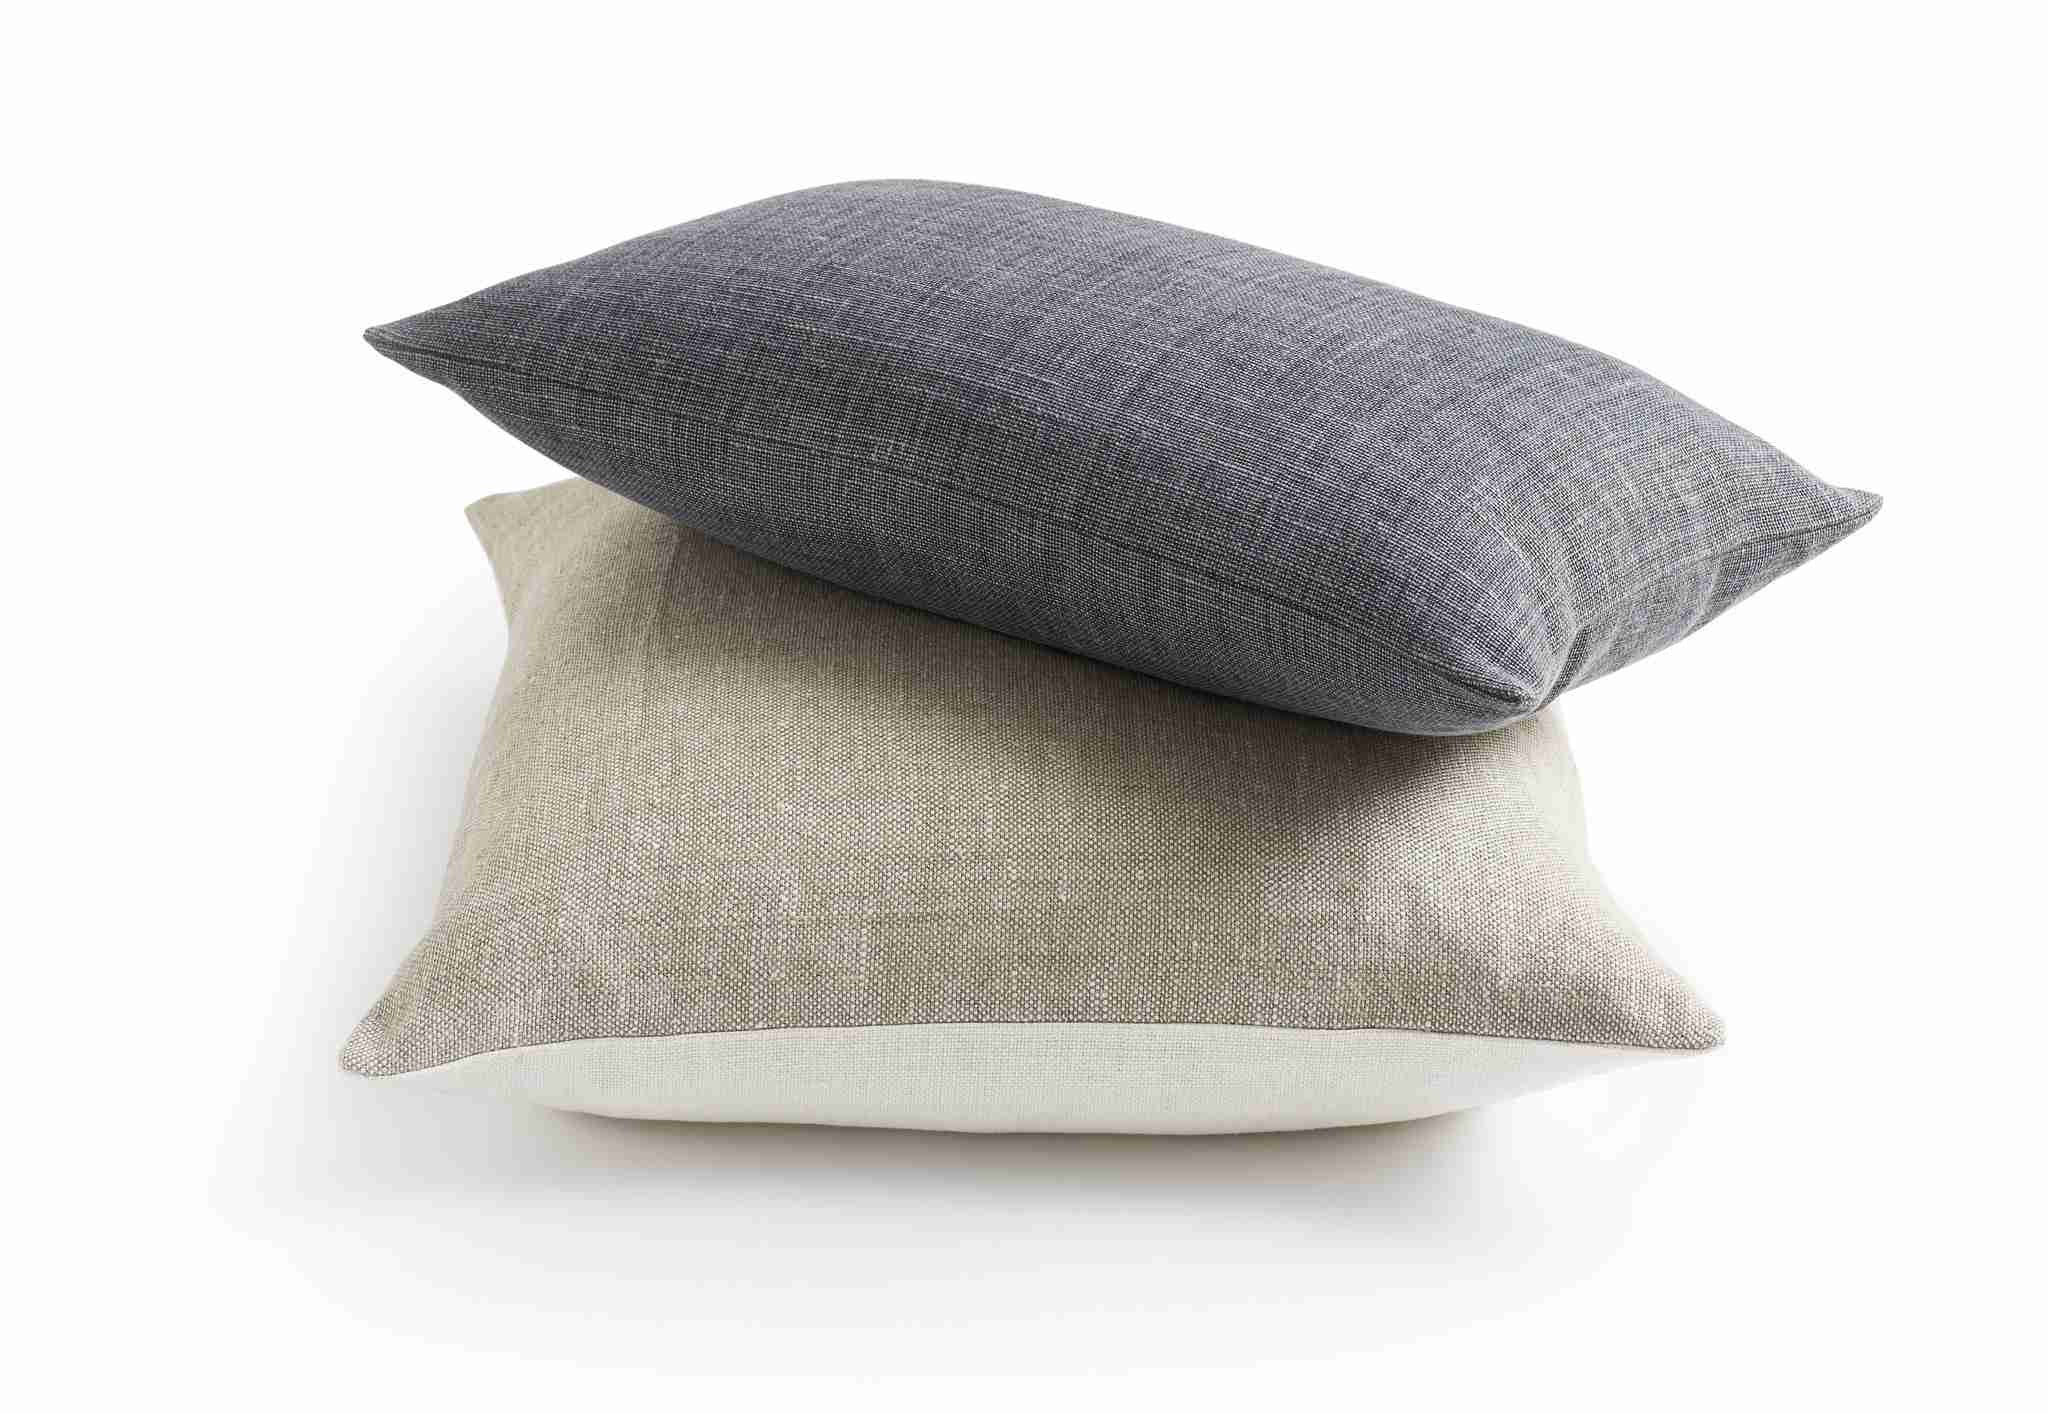 Belgian Linen Pillow Cover - Oyster and Oatmeal  & Shale lumbar